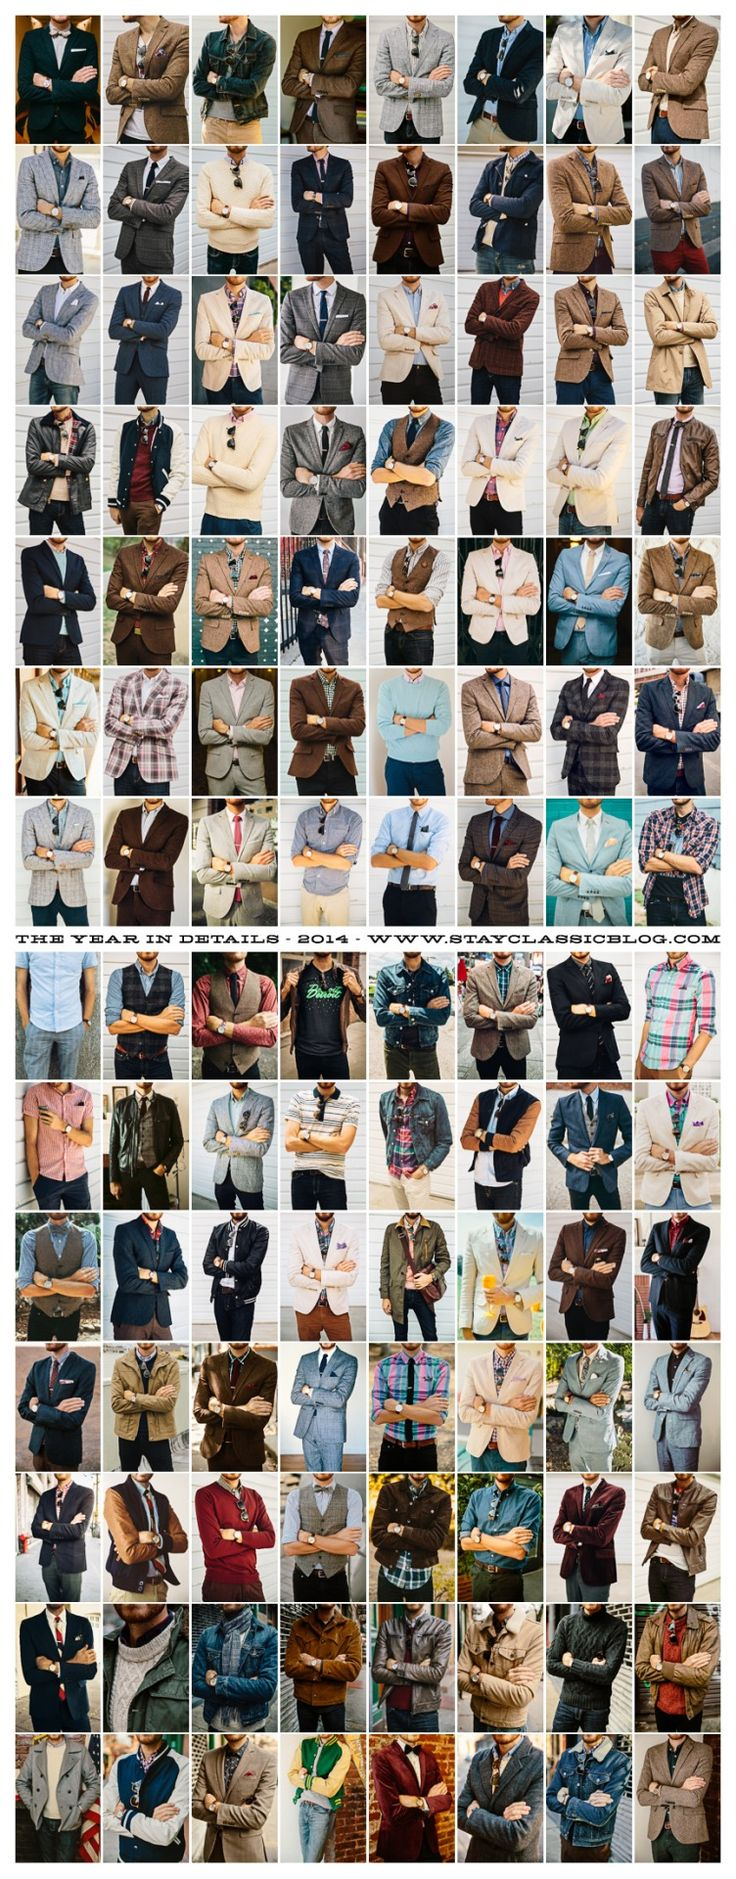 Details of 112 outfits from 2014. See you in 2015.